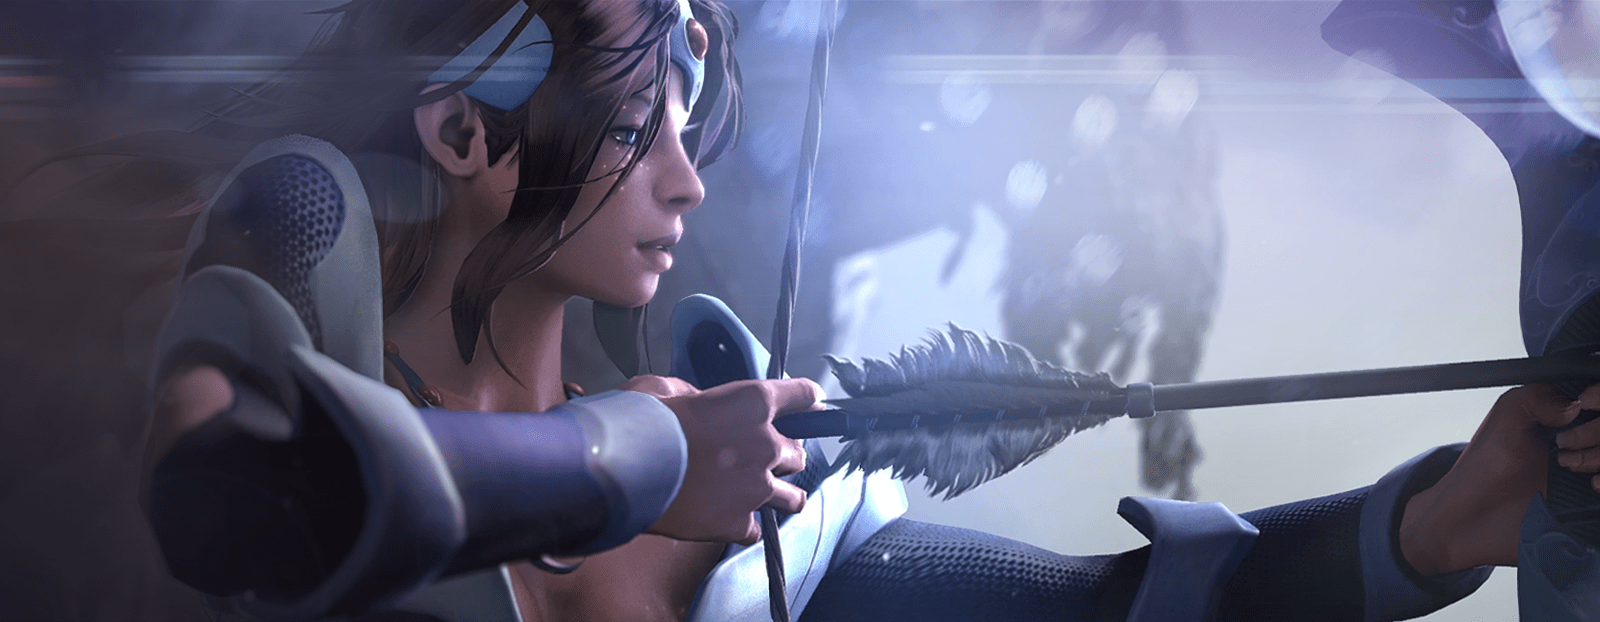 Mirana Wallpaper Hd Dota 2 Being Revamped With Source 2 Engine And Upgraded